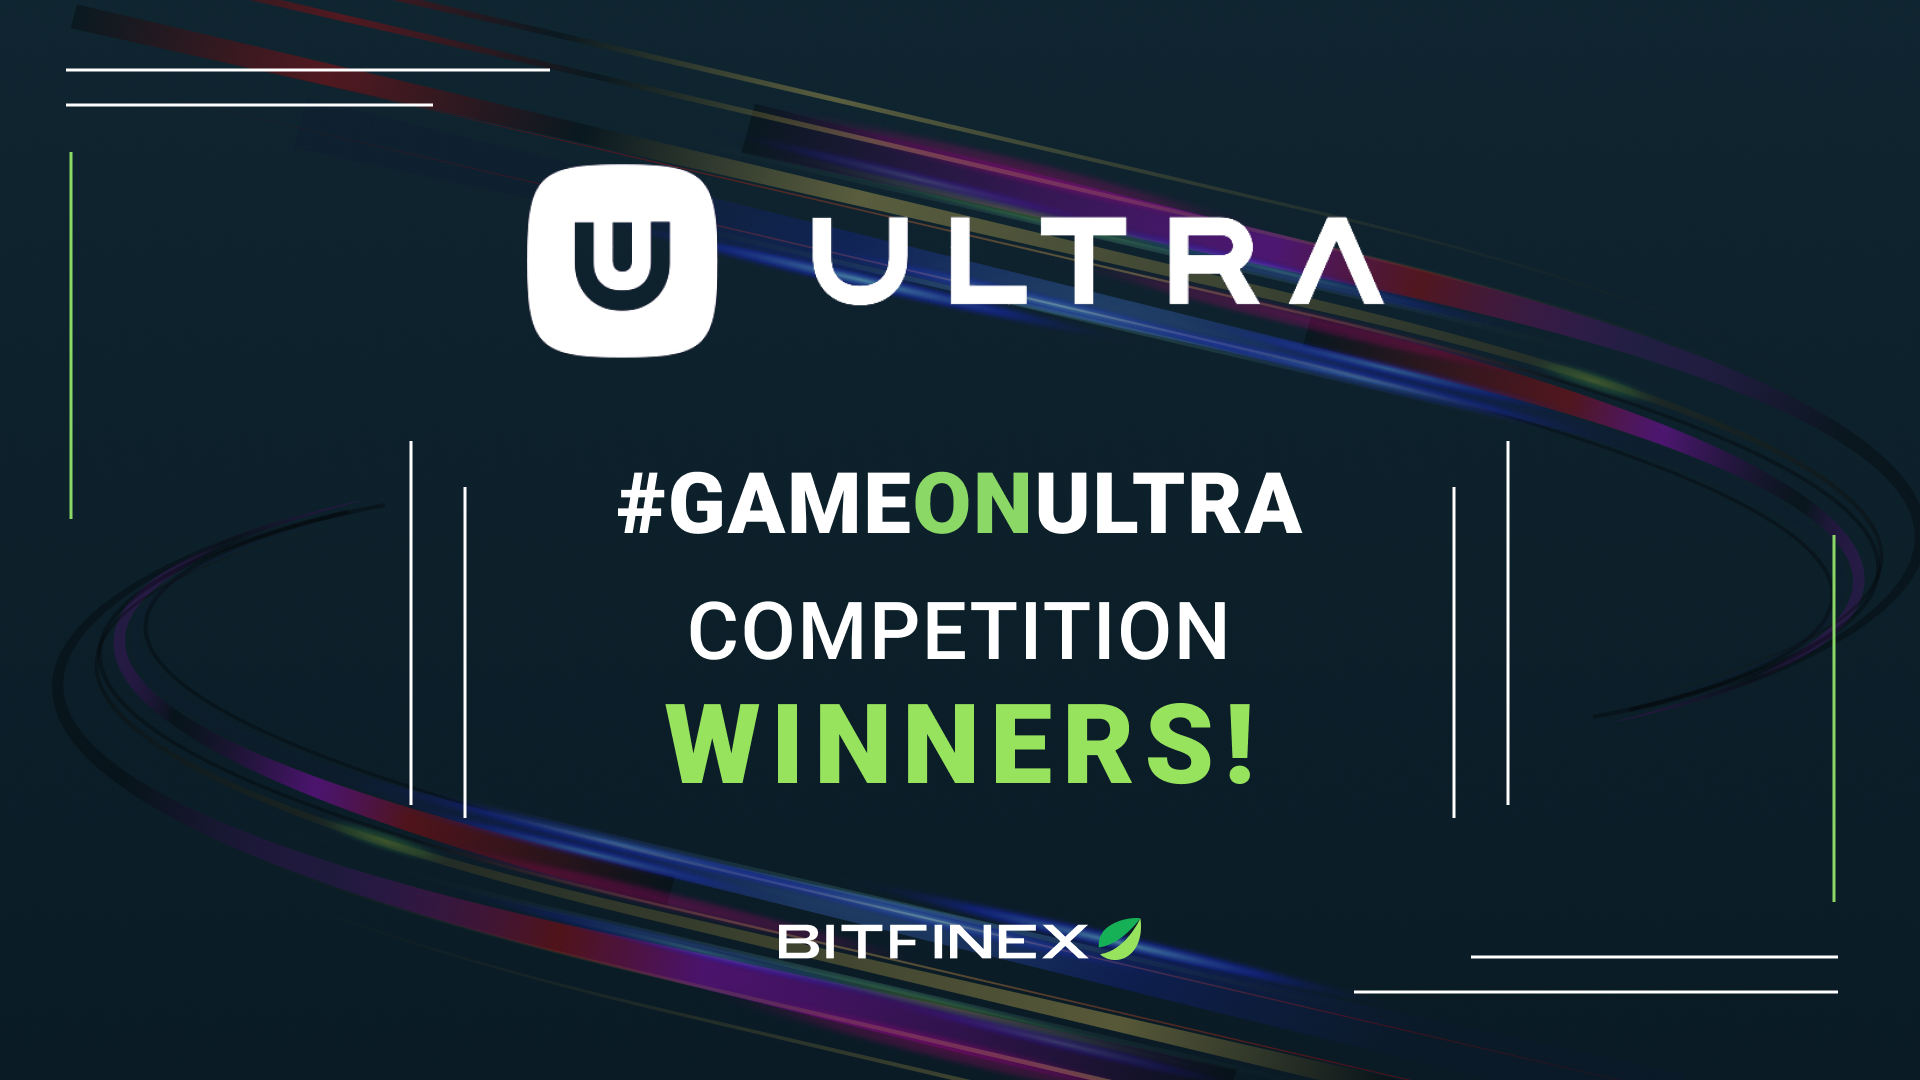 Congratulations to the #GameOnUltra trading competition winners!